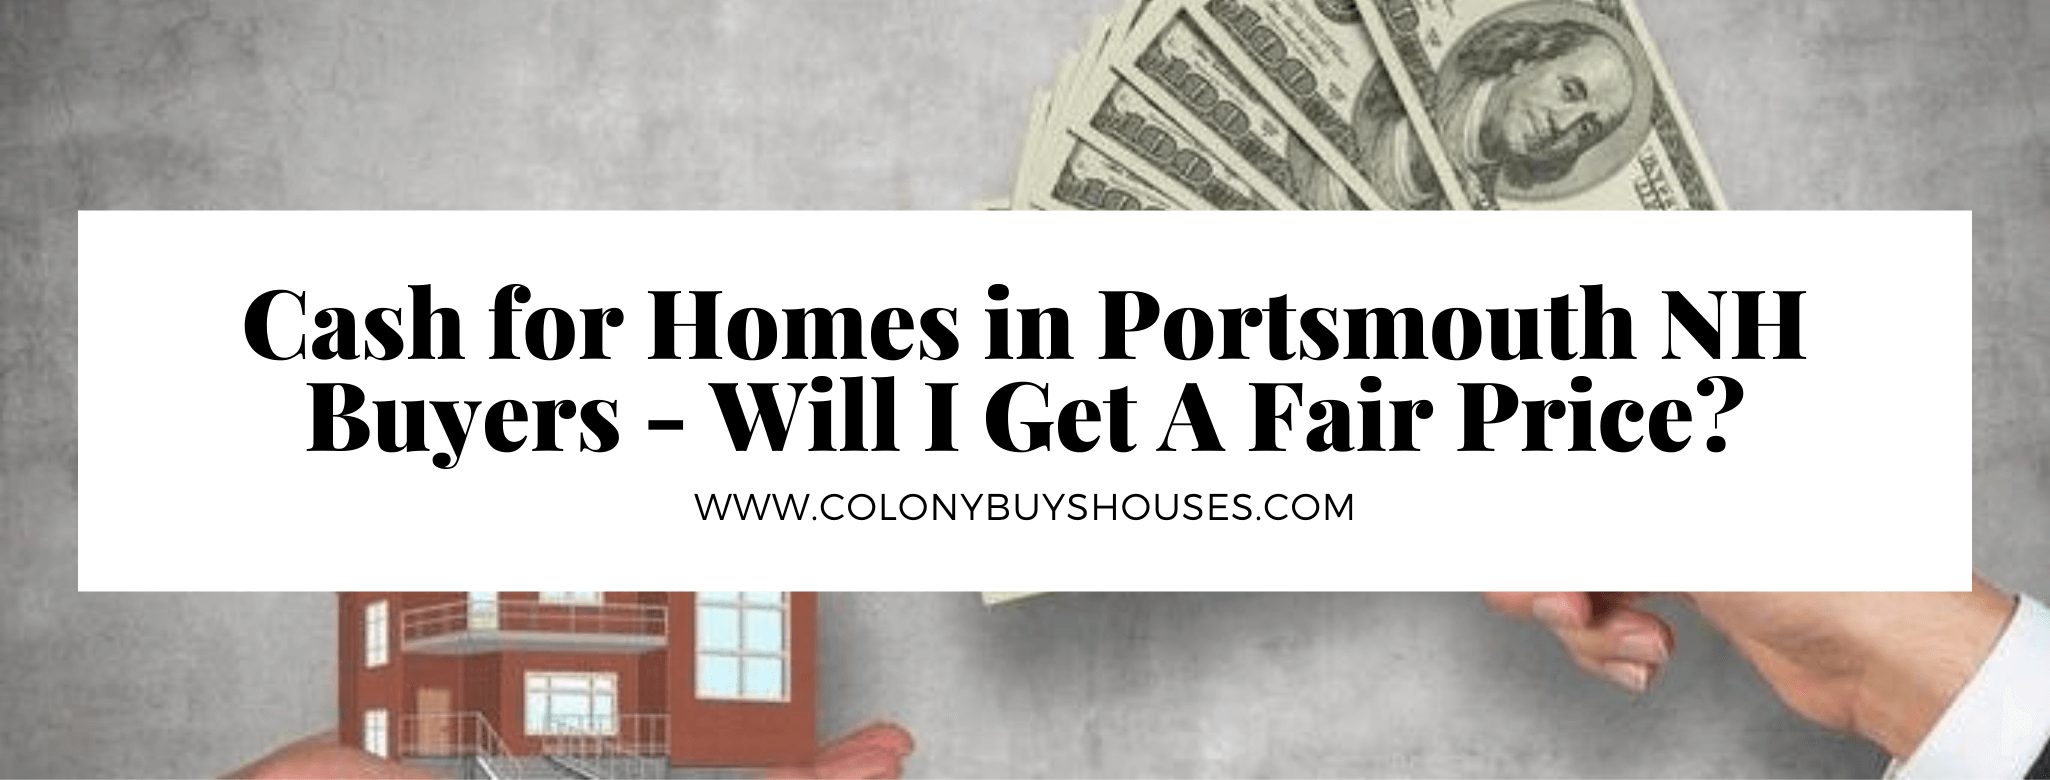 We buy your properties in Portsmouth NH